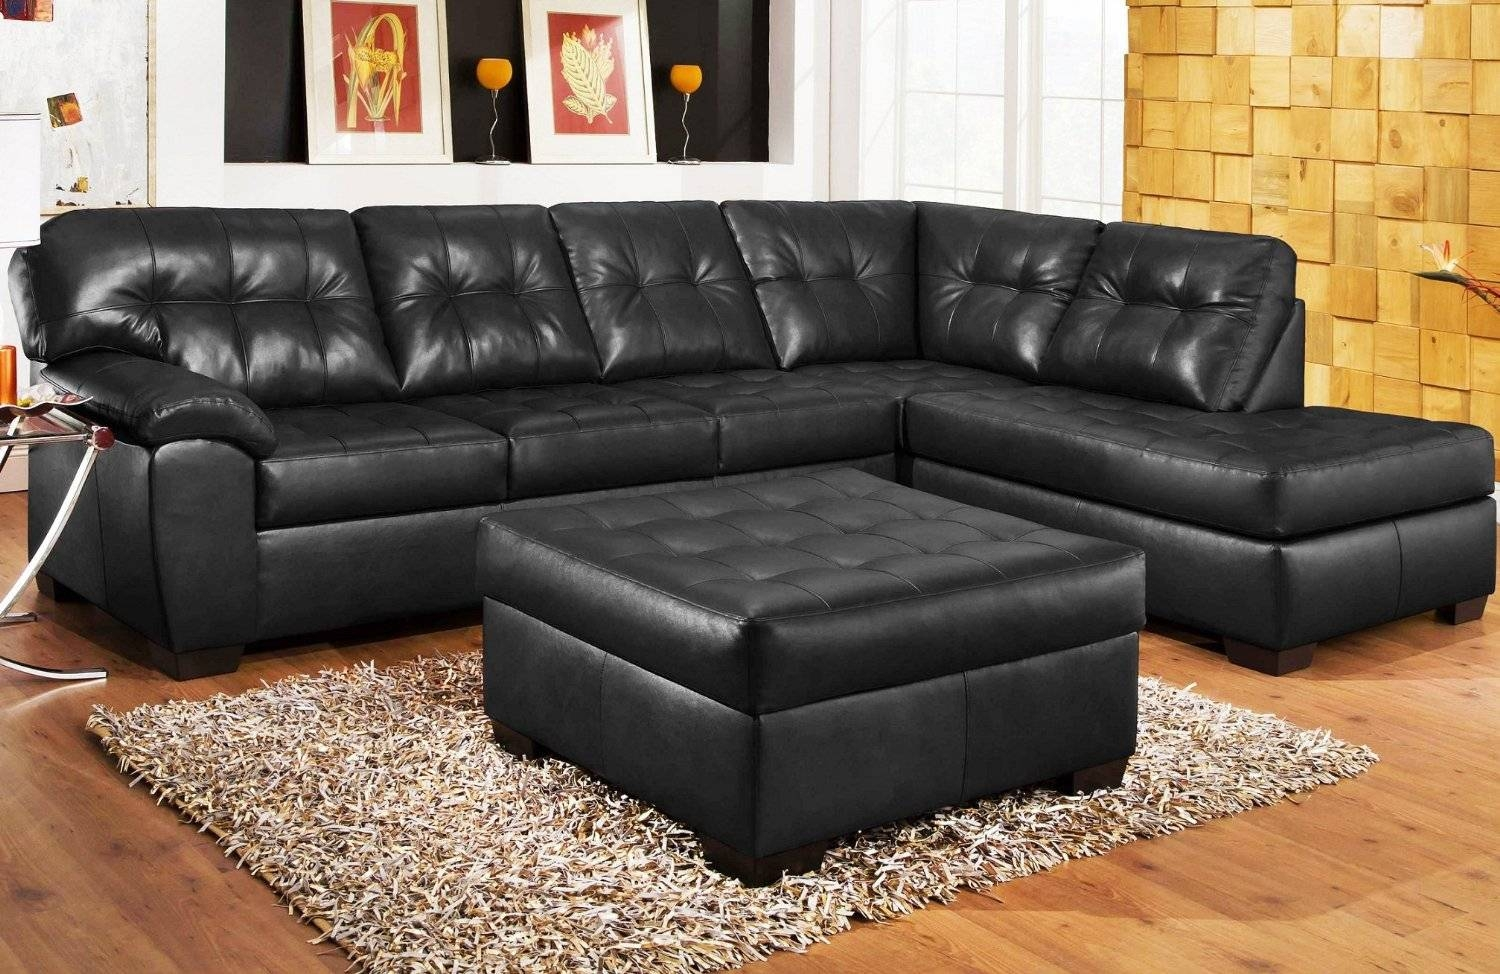 Sofas Center : Leather Sofa Sectional Seattle Sectionals With for Leather Sofa Sectionals For Sale (Image 21 of 30)